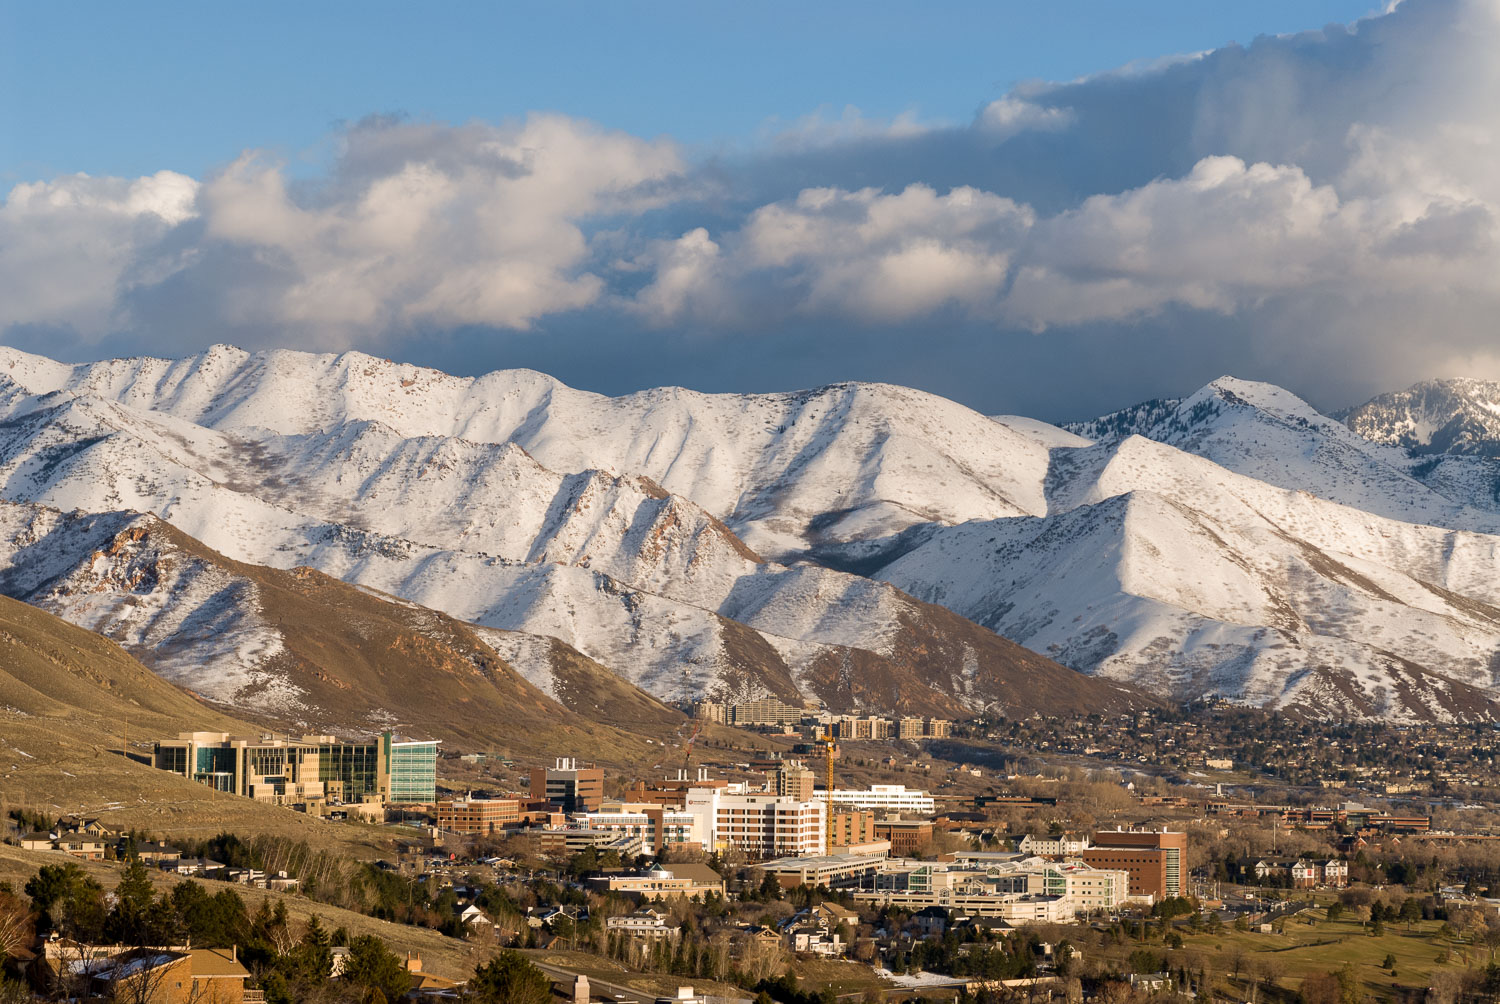 University of Utah and University Hospital  in proximity to  Was